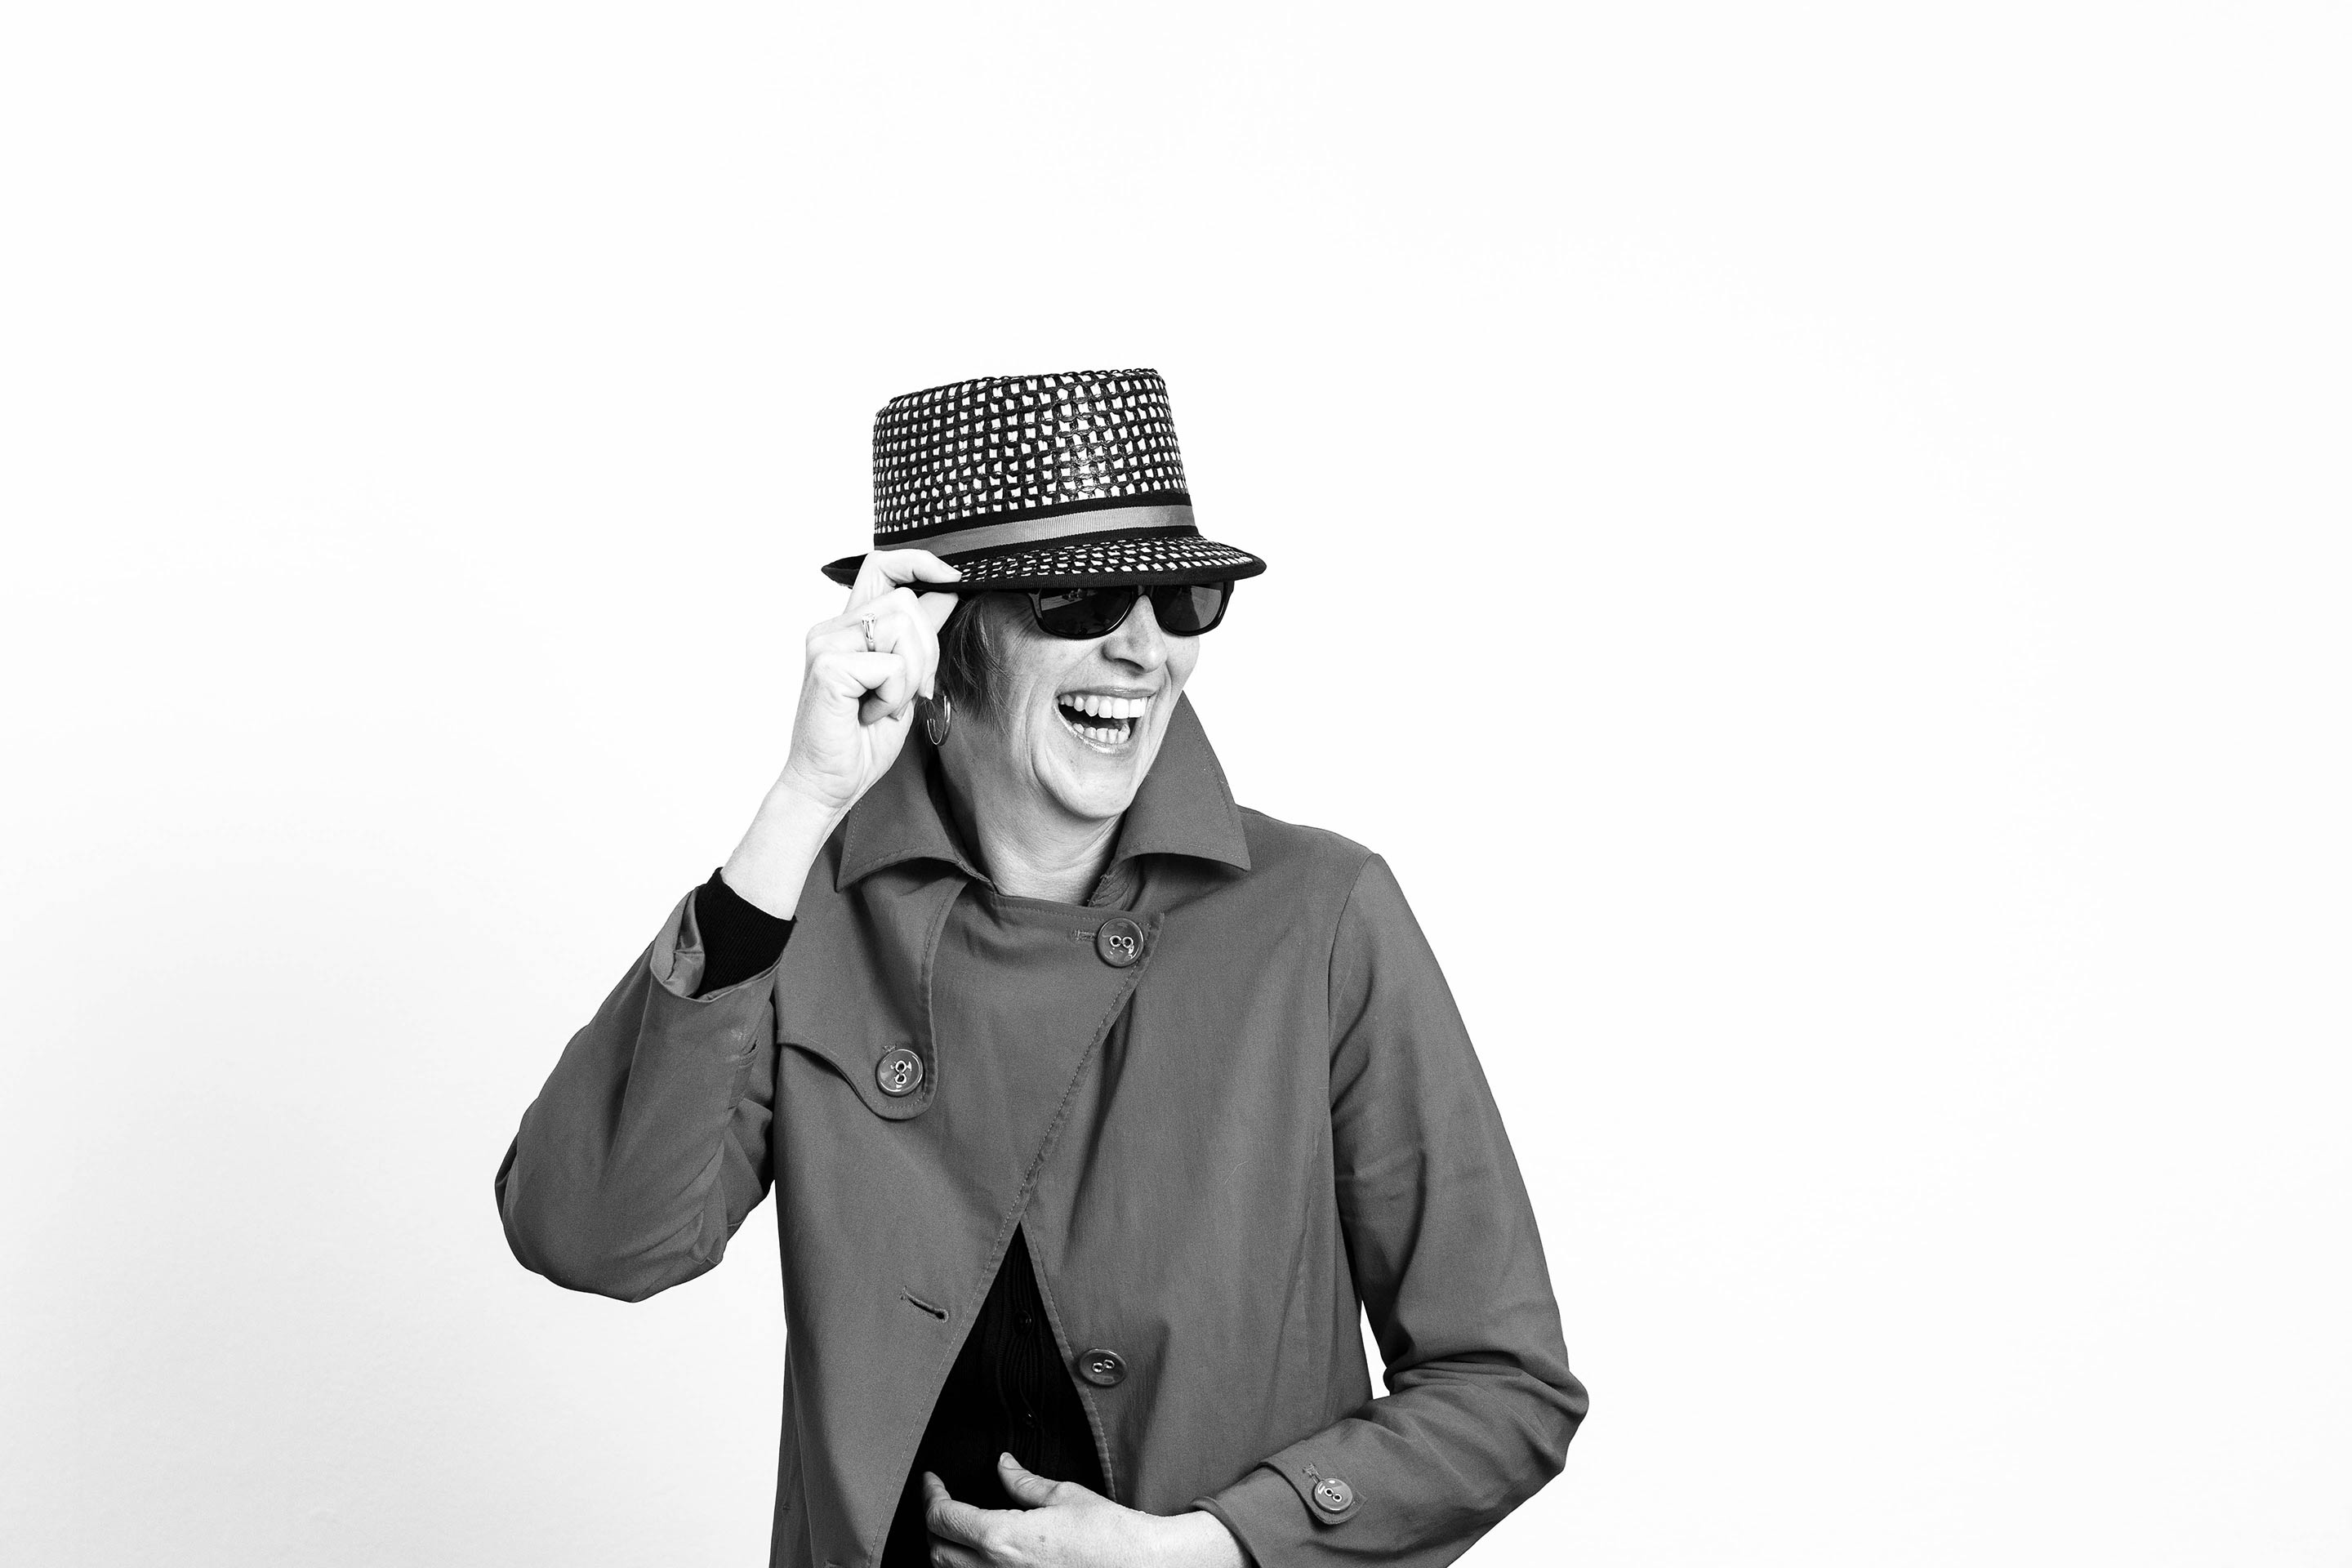 A lady wearing sunglasses and a hat, photographed for a Newcastle corporate engagement team.